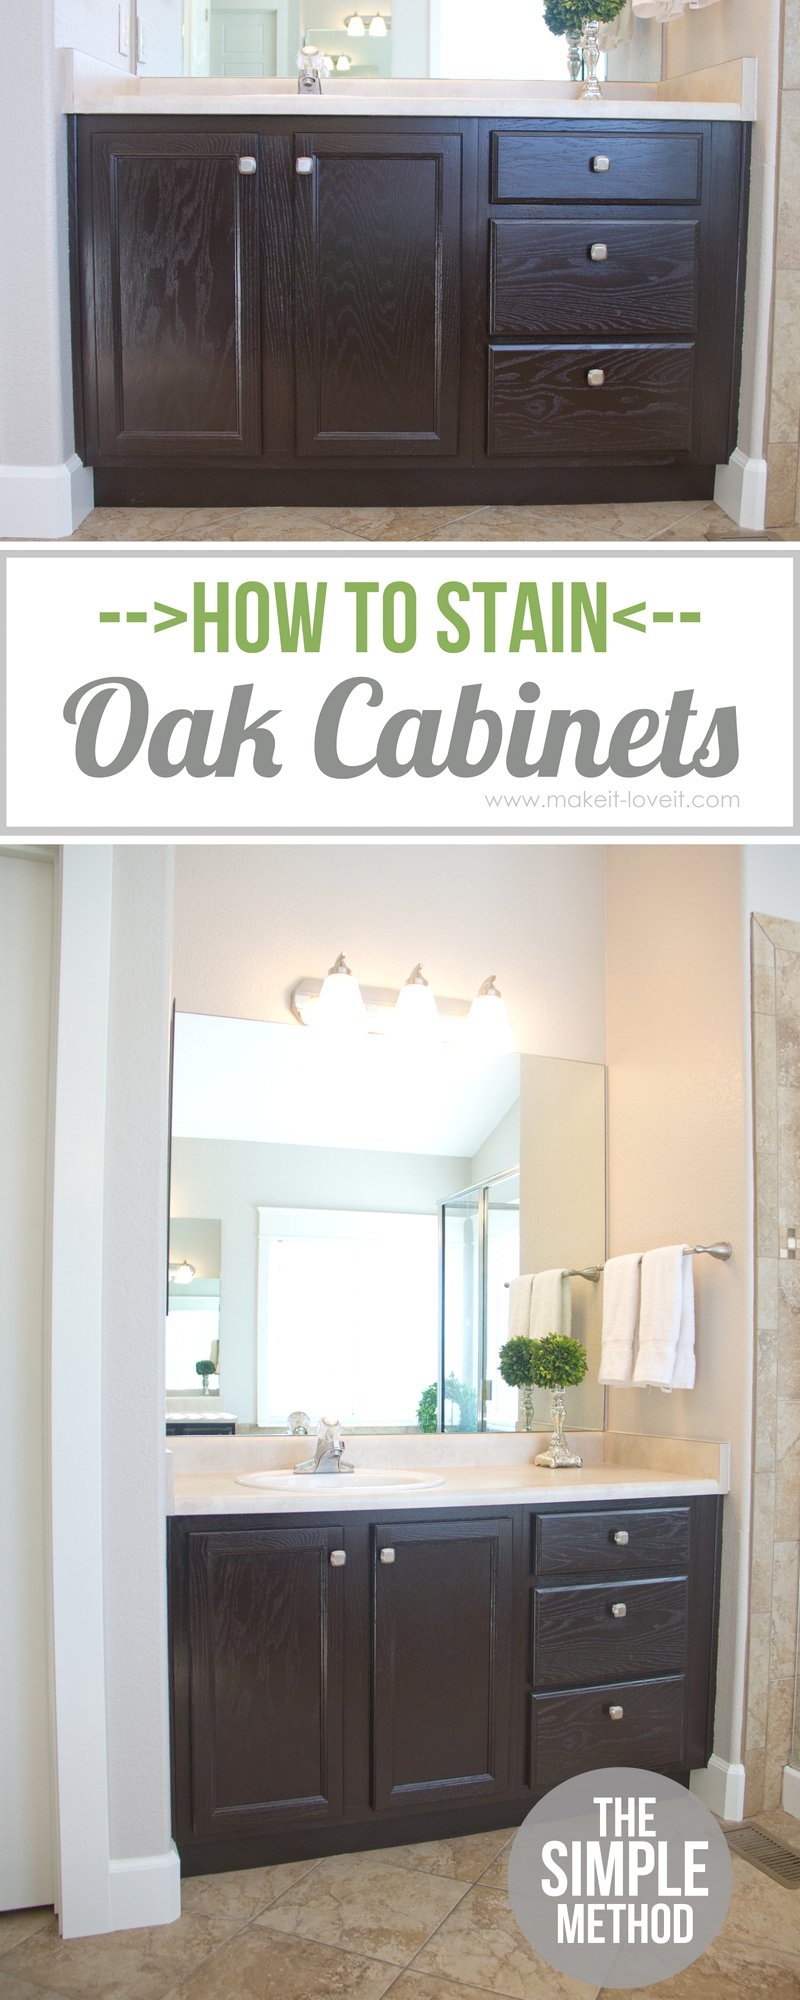 how to stain oak cabinets the simple method without sanding gel stain kitchen cabinets How to Stain OAK Cabinets the simple method no sanding necessary